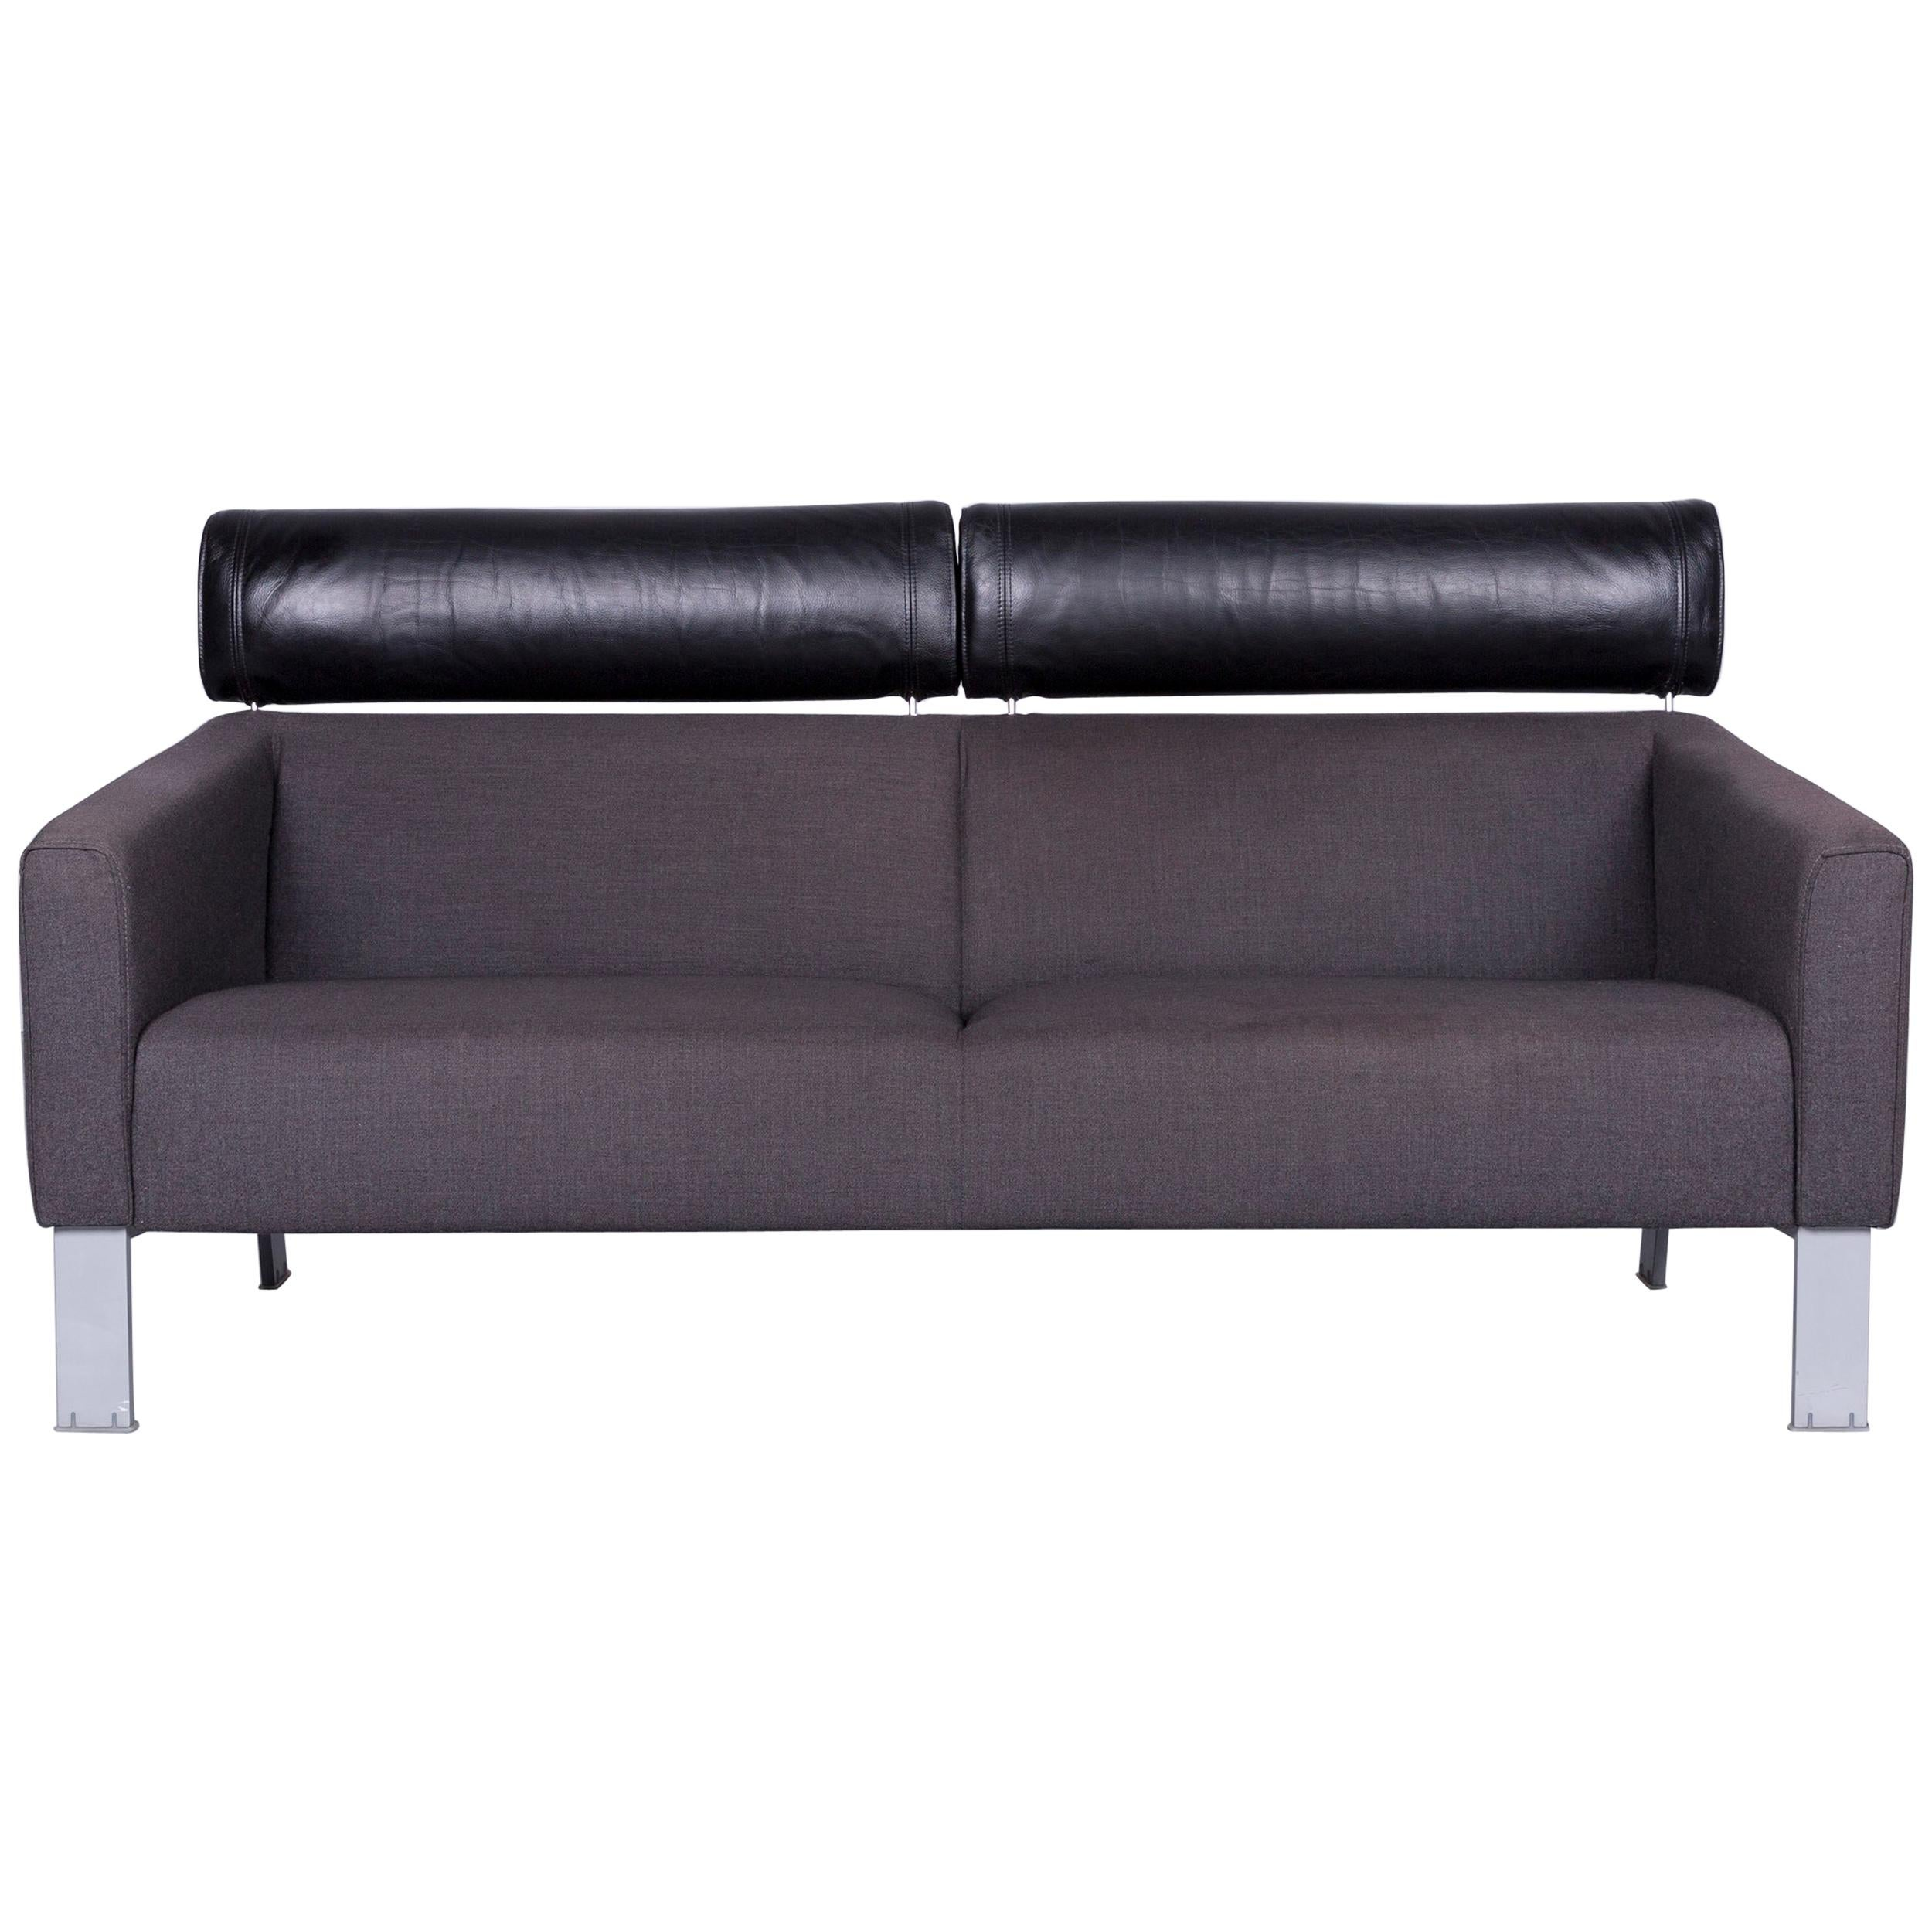 Leolux Patachou Designer Sofa Fabric Grey Two Seat Couch